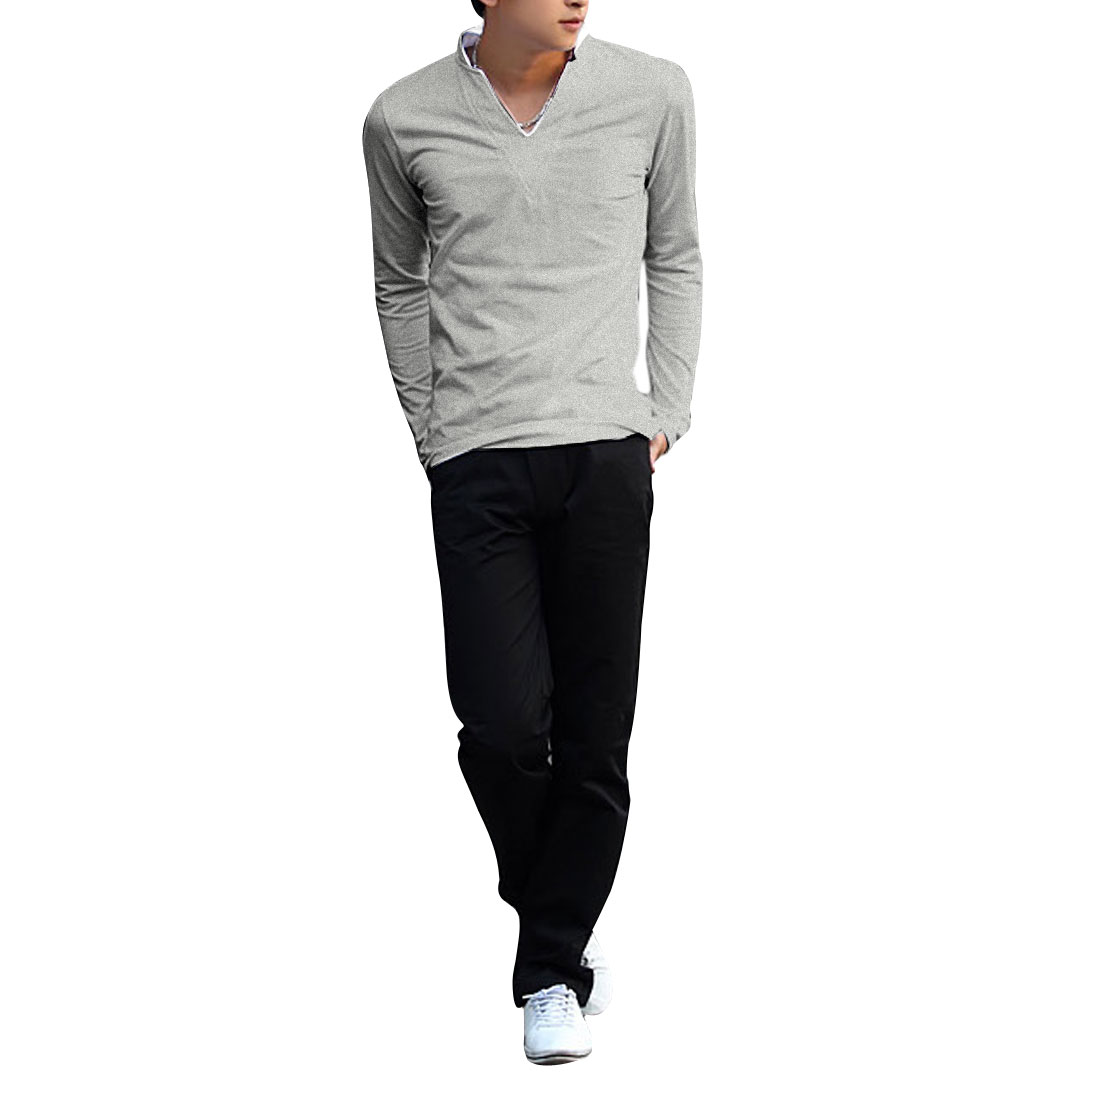 Men Stand Collar Pullover Long Sleeve Summer Wearing Shirt Light Gray S